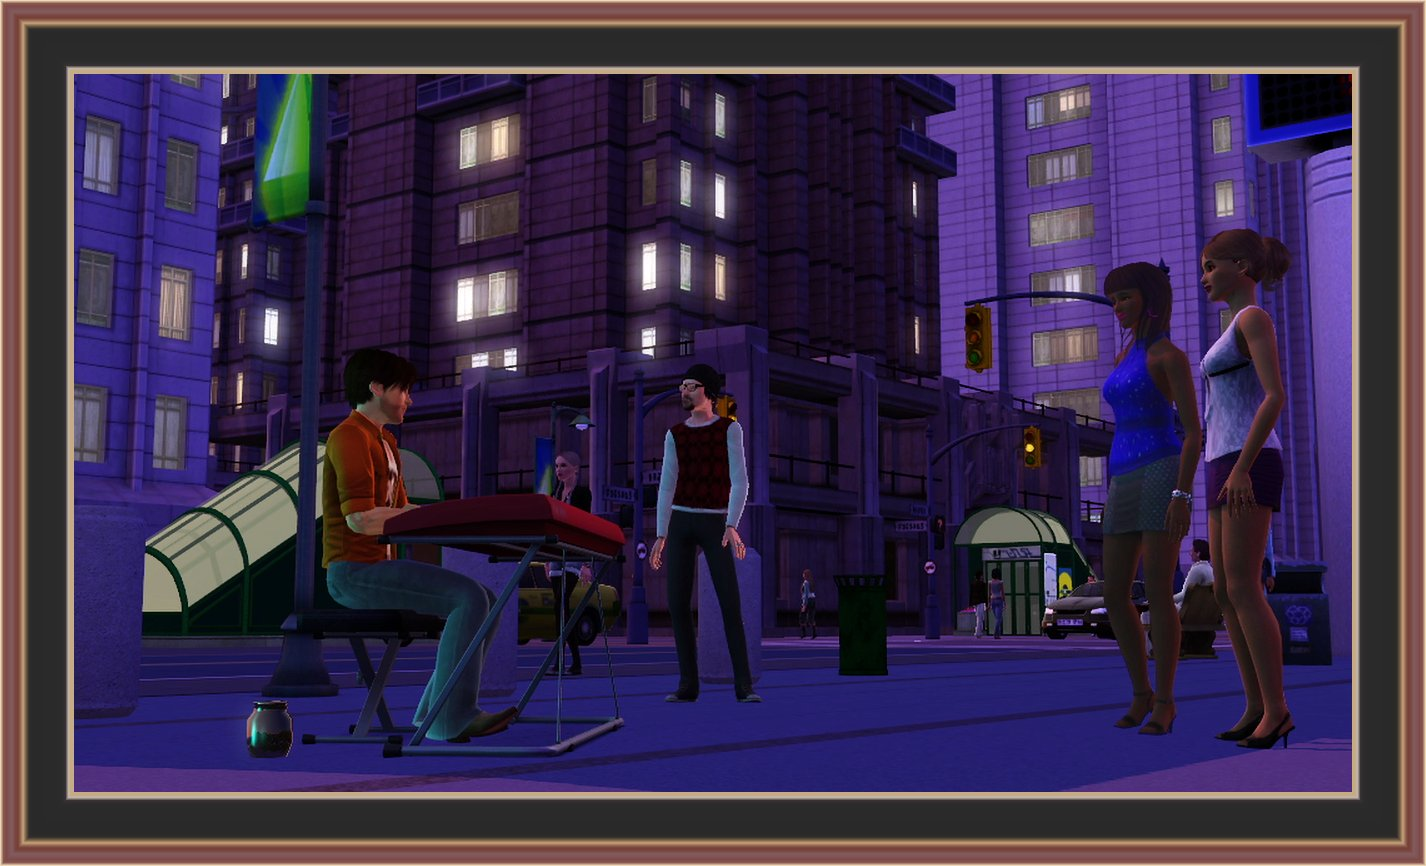 sims 3 download full version free for windows 8